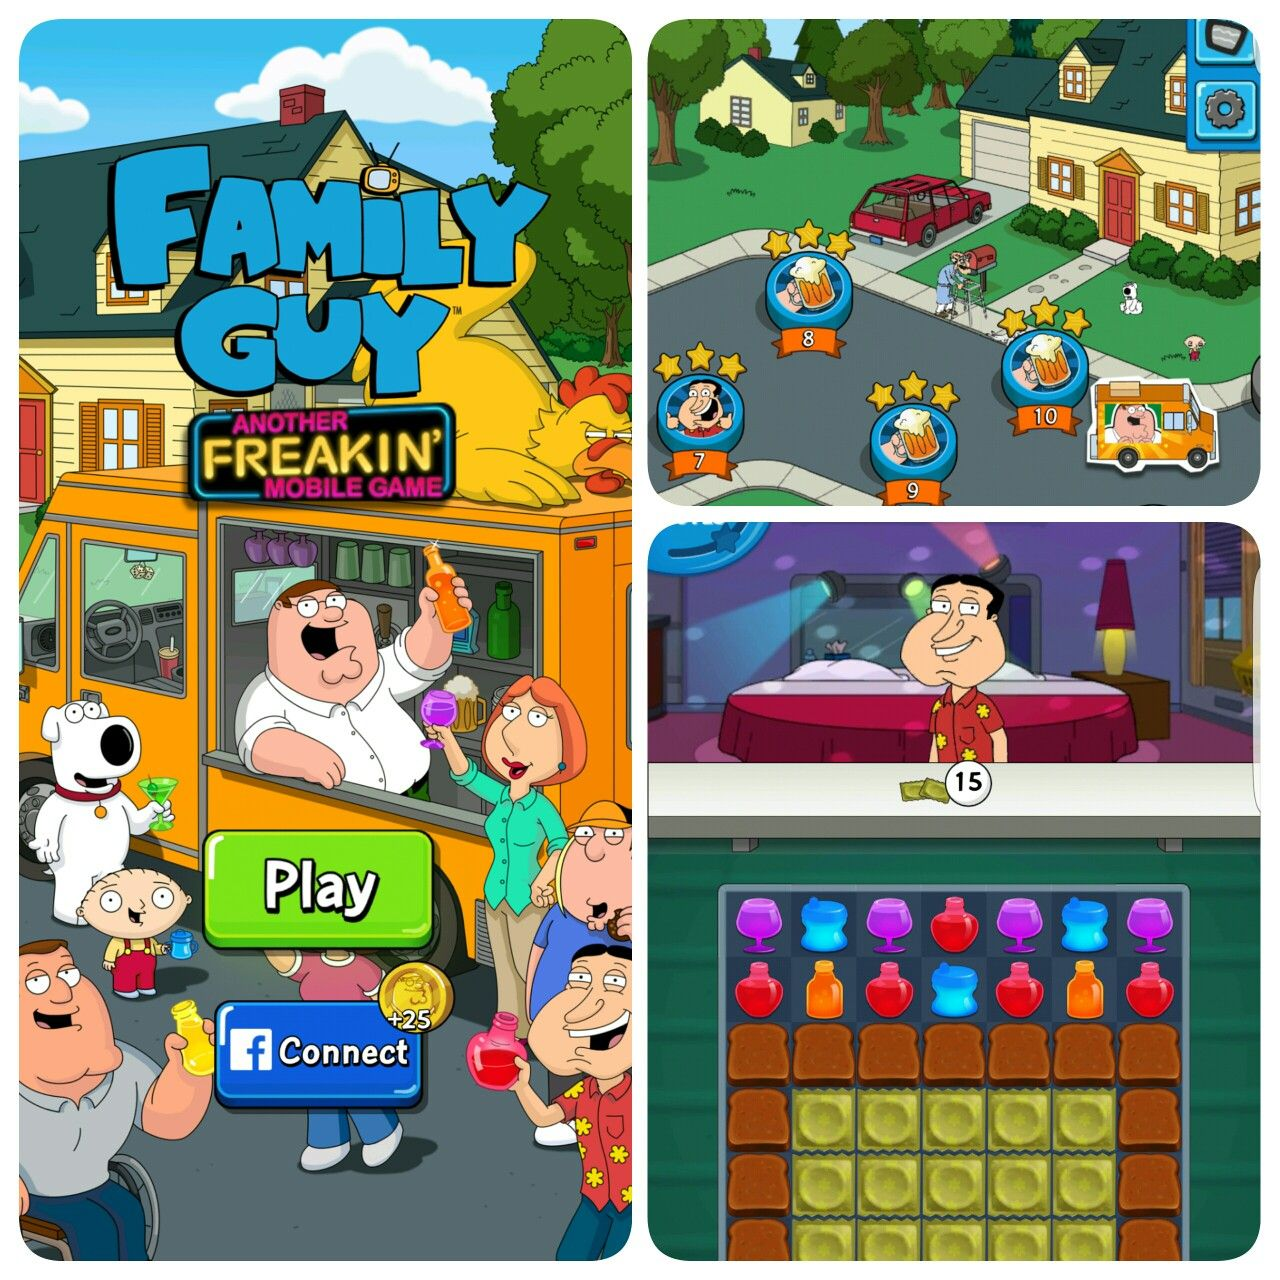 Family Guy Another Freaking Mobile Game Match3 puzzle